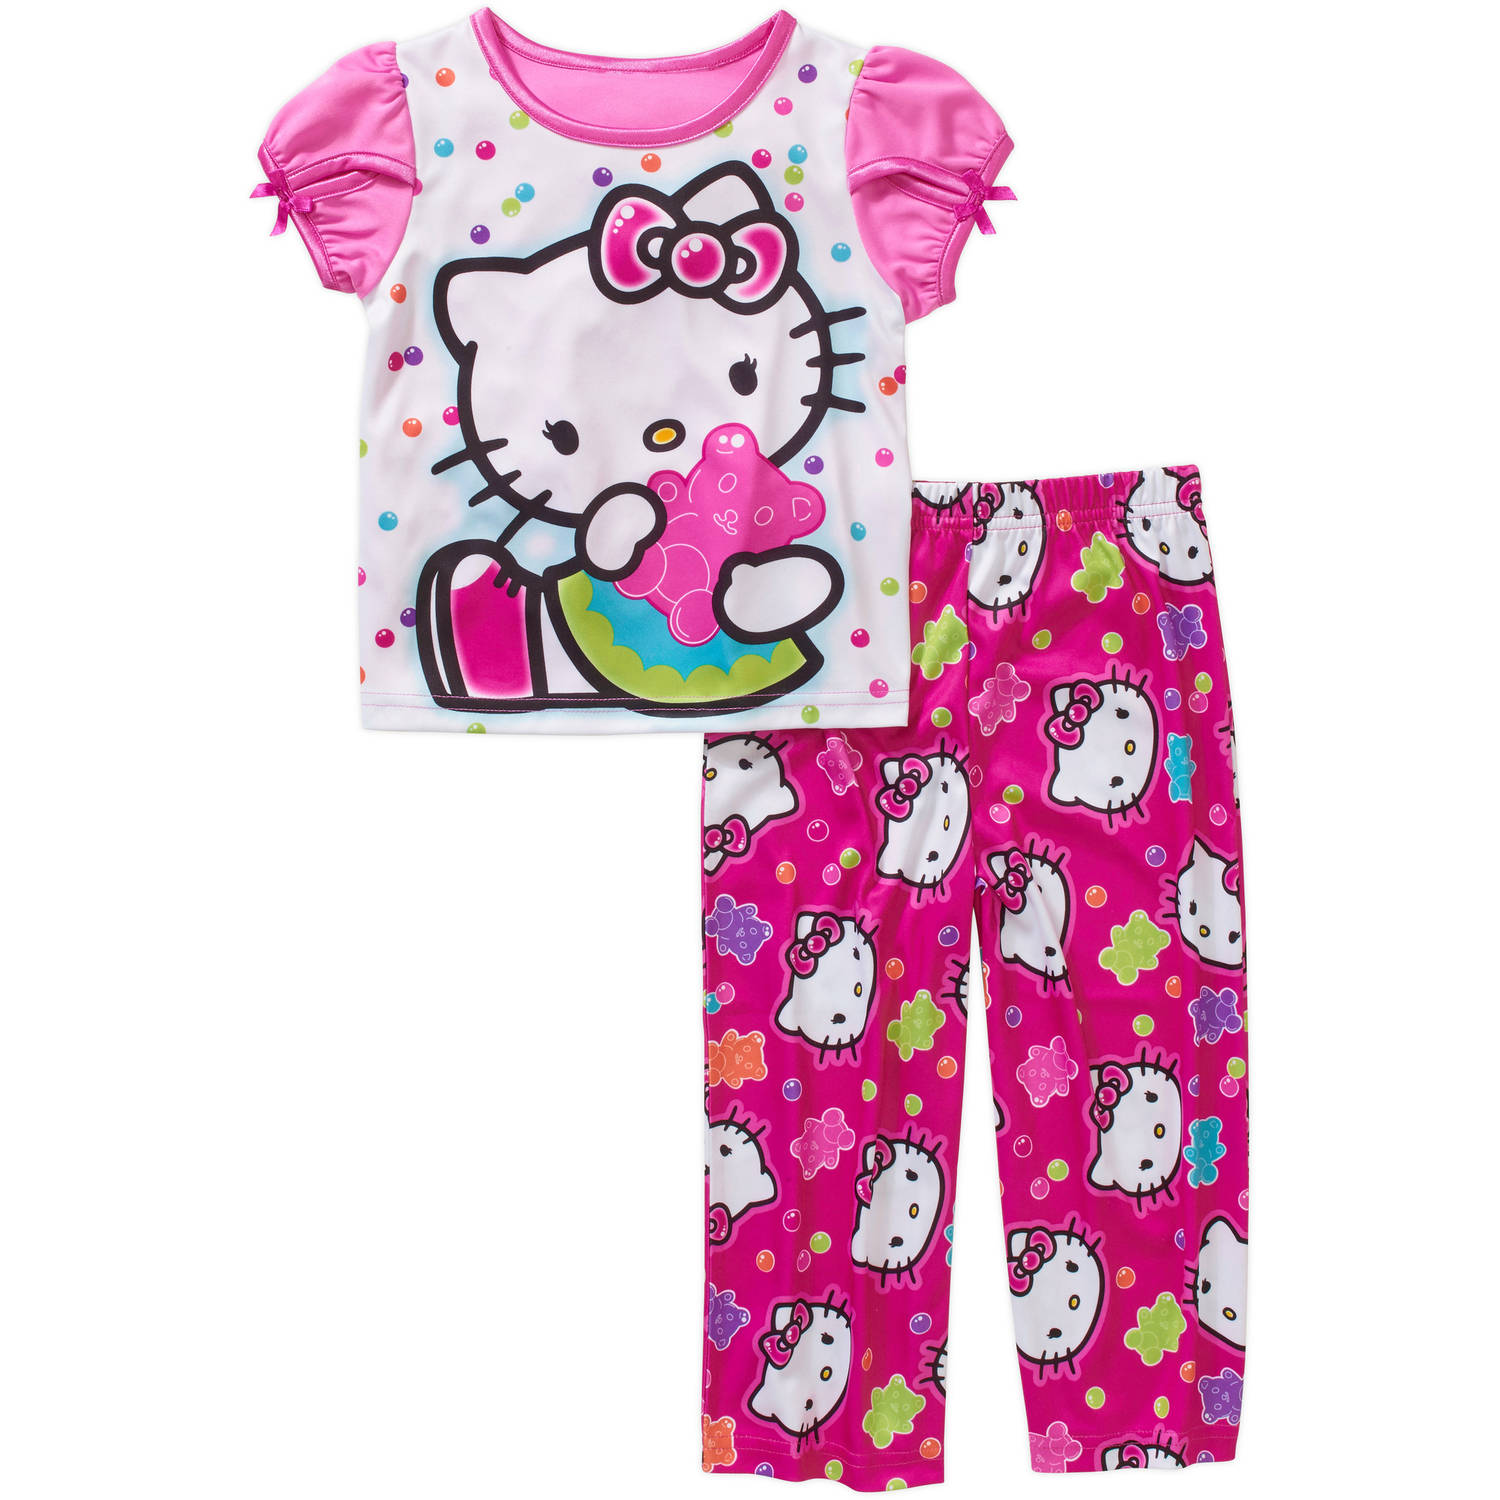 Hello Kitty Toddler Girl Short Sleeve Pajama Sleepwear Set